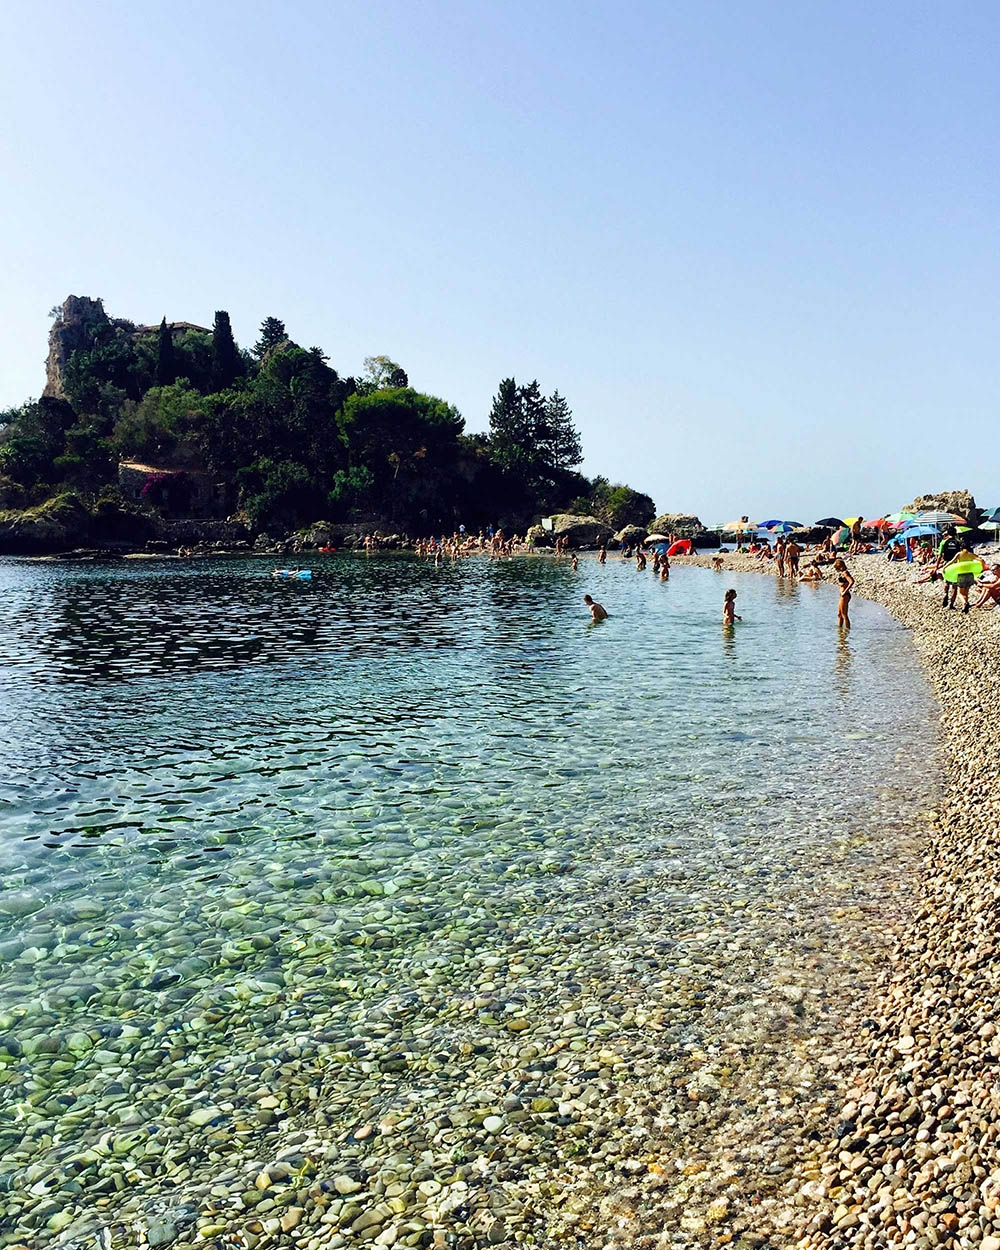 Rocky shores and turquoise water at Isola Bella